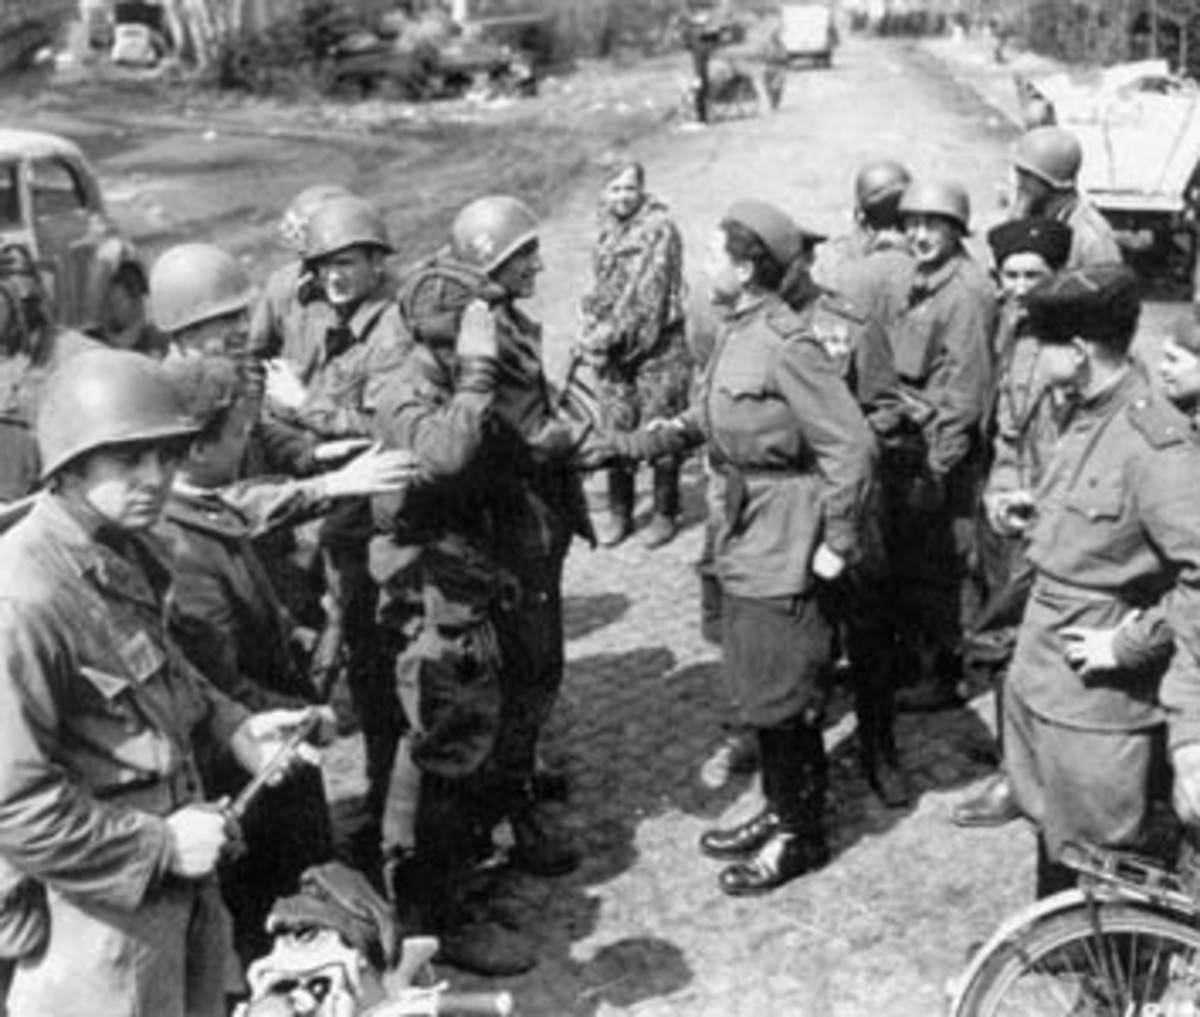 April 25, 1945, The Red Army's 58th Guards Division of the 5th Guards Army meets the U.S. 69th Infantry Division of the First Army near Torgau, on the Elbe River.